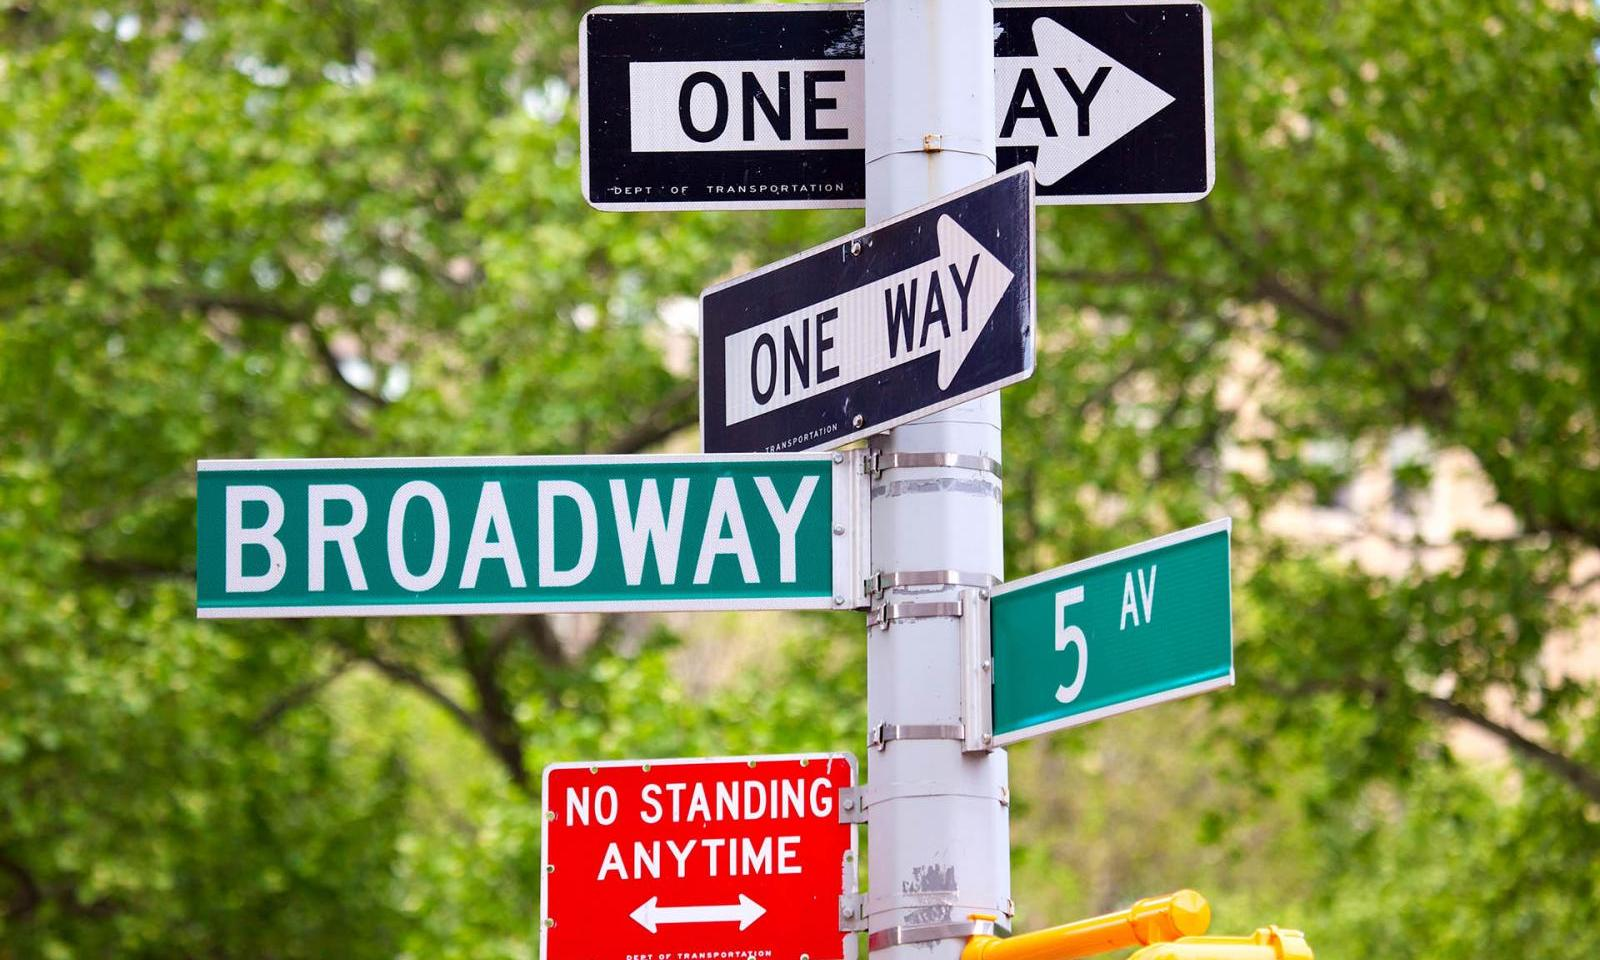 Broadway, 5th avenue and One Way Street Signs, New York